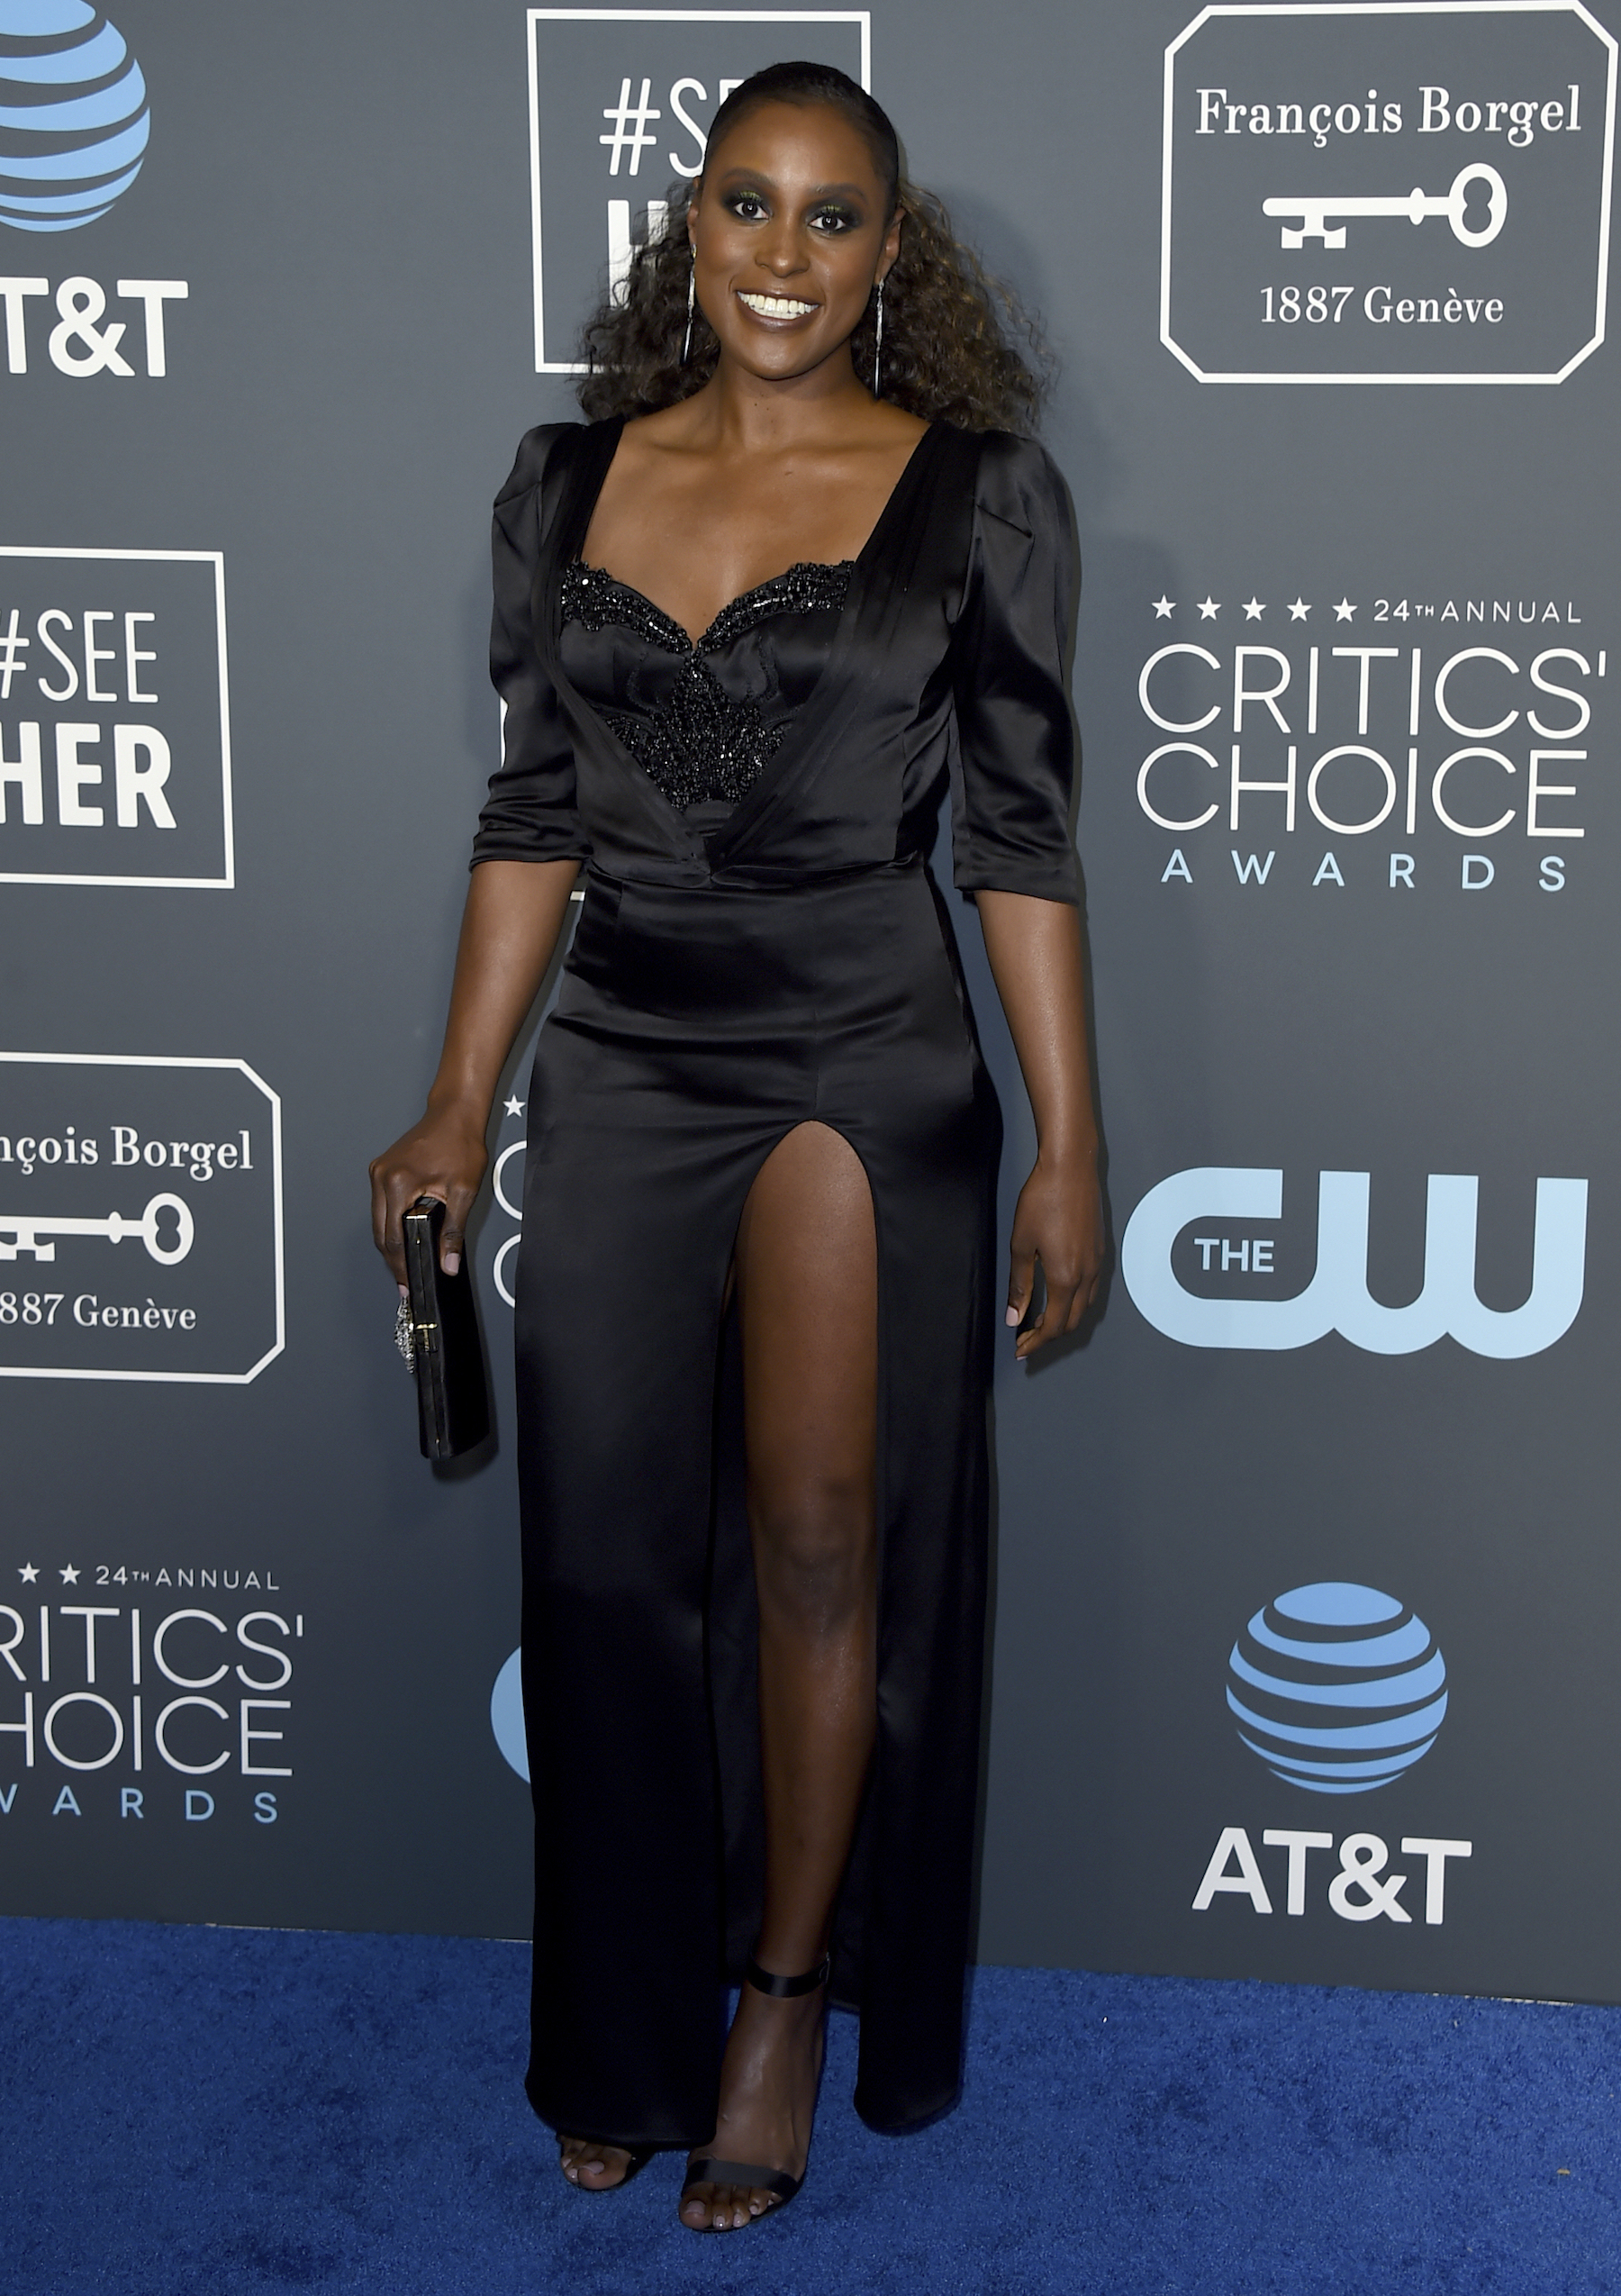 <div class='meta'><div class='origin-logo' data-origin='AP'></div><span class='caption-text' data-credit='Jordan Strauss/Invision/AP'>Issa Rae arrives at the 24th annual Critics' Choice Awards on Sunday, Jan. 13, 2019, at the Barker Hangar in Santa Monica, Calif.</span></div>